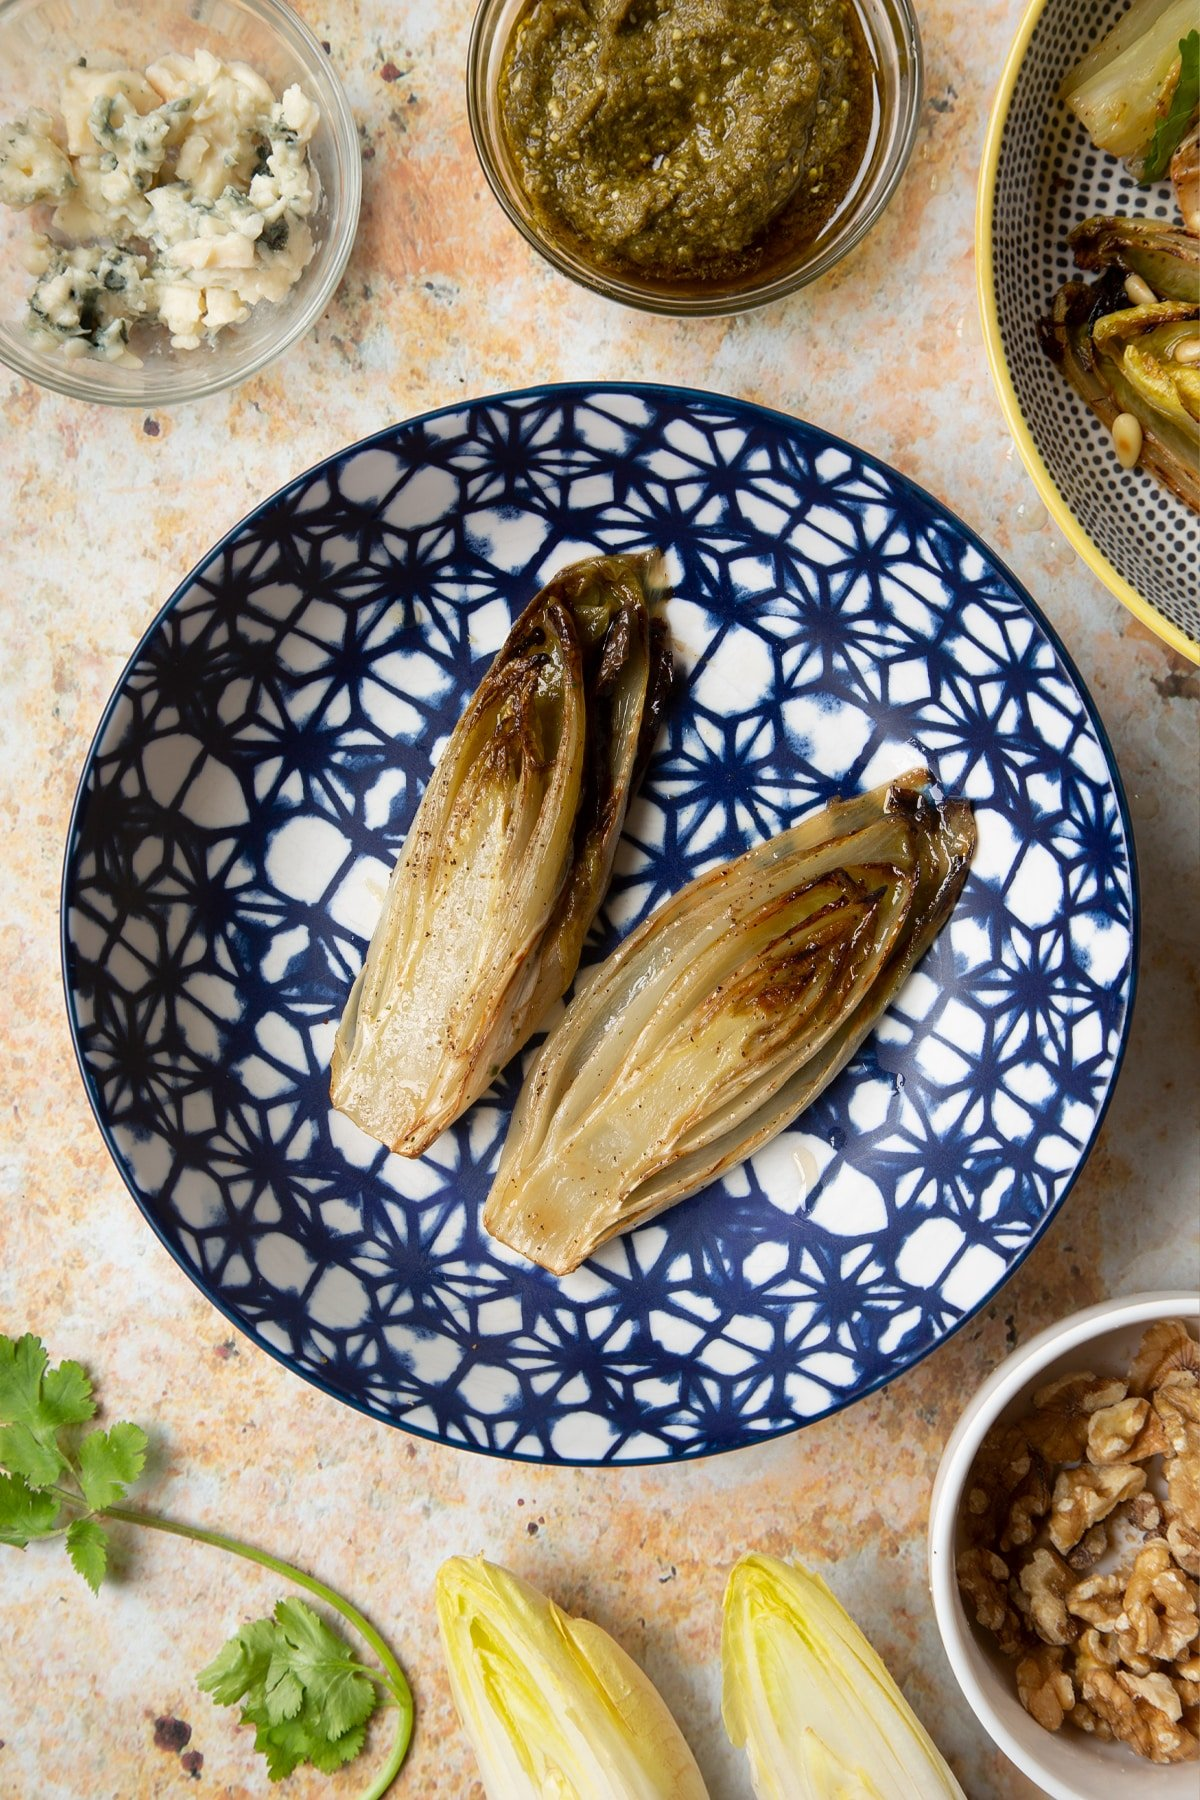 Grill braised chicory in a bowl.